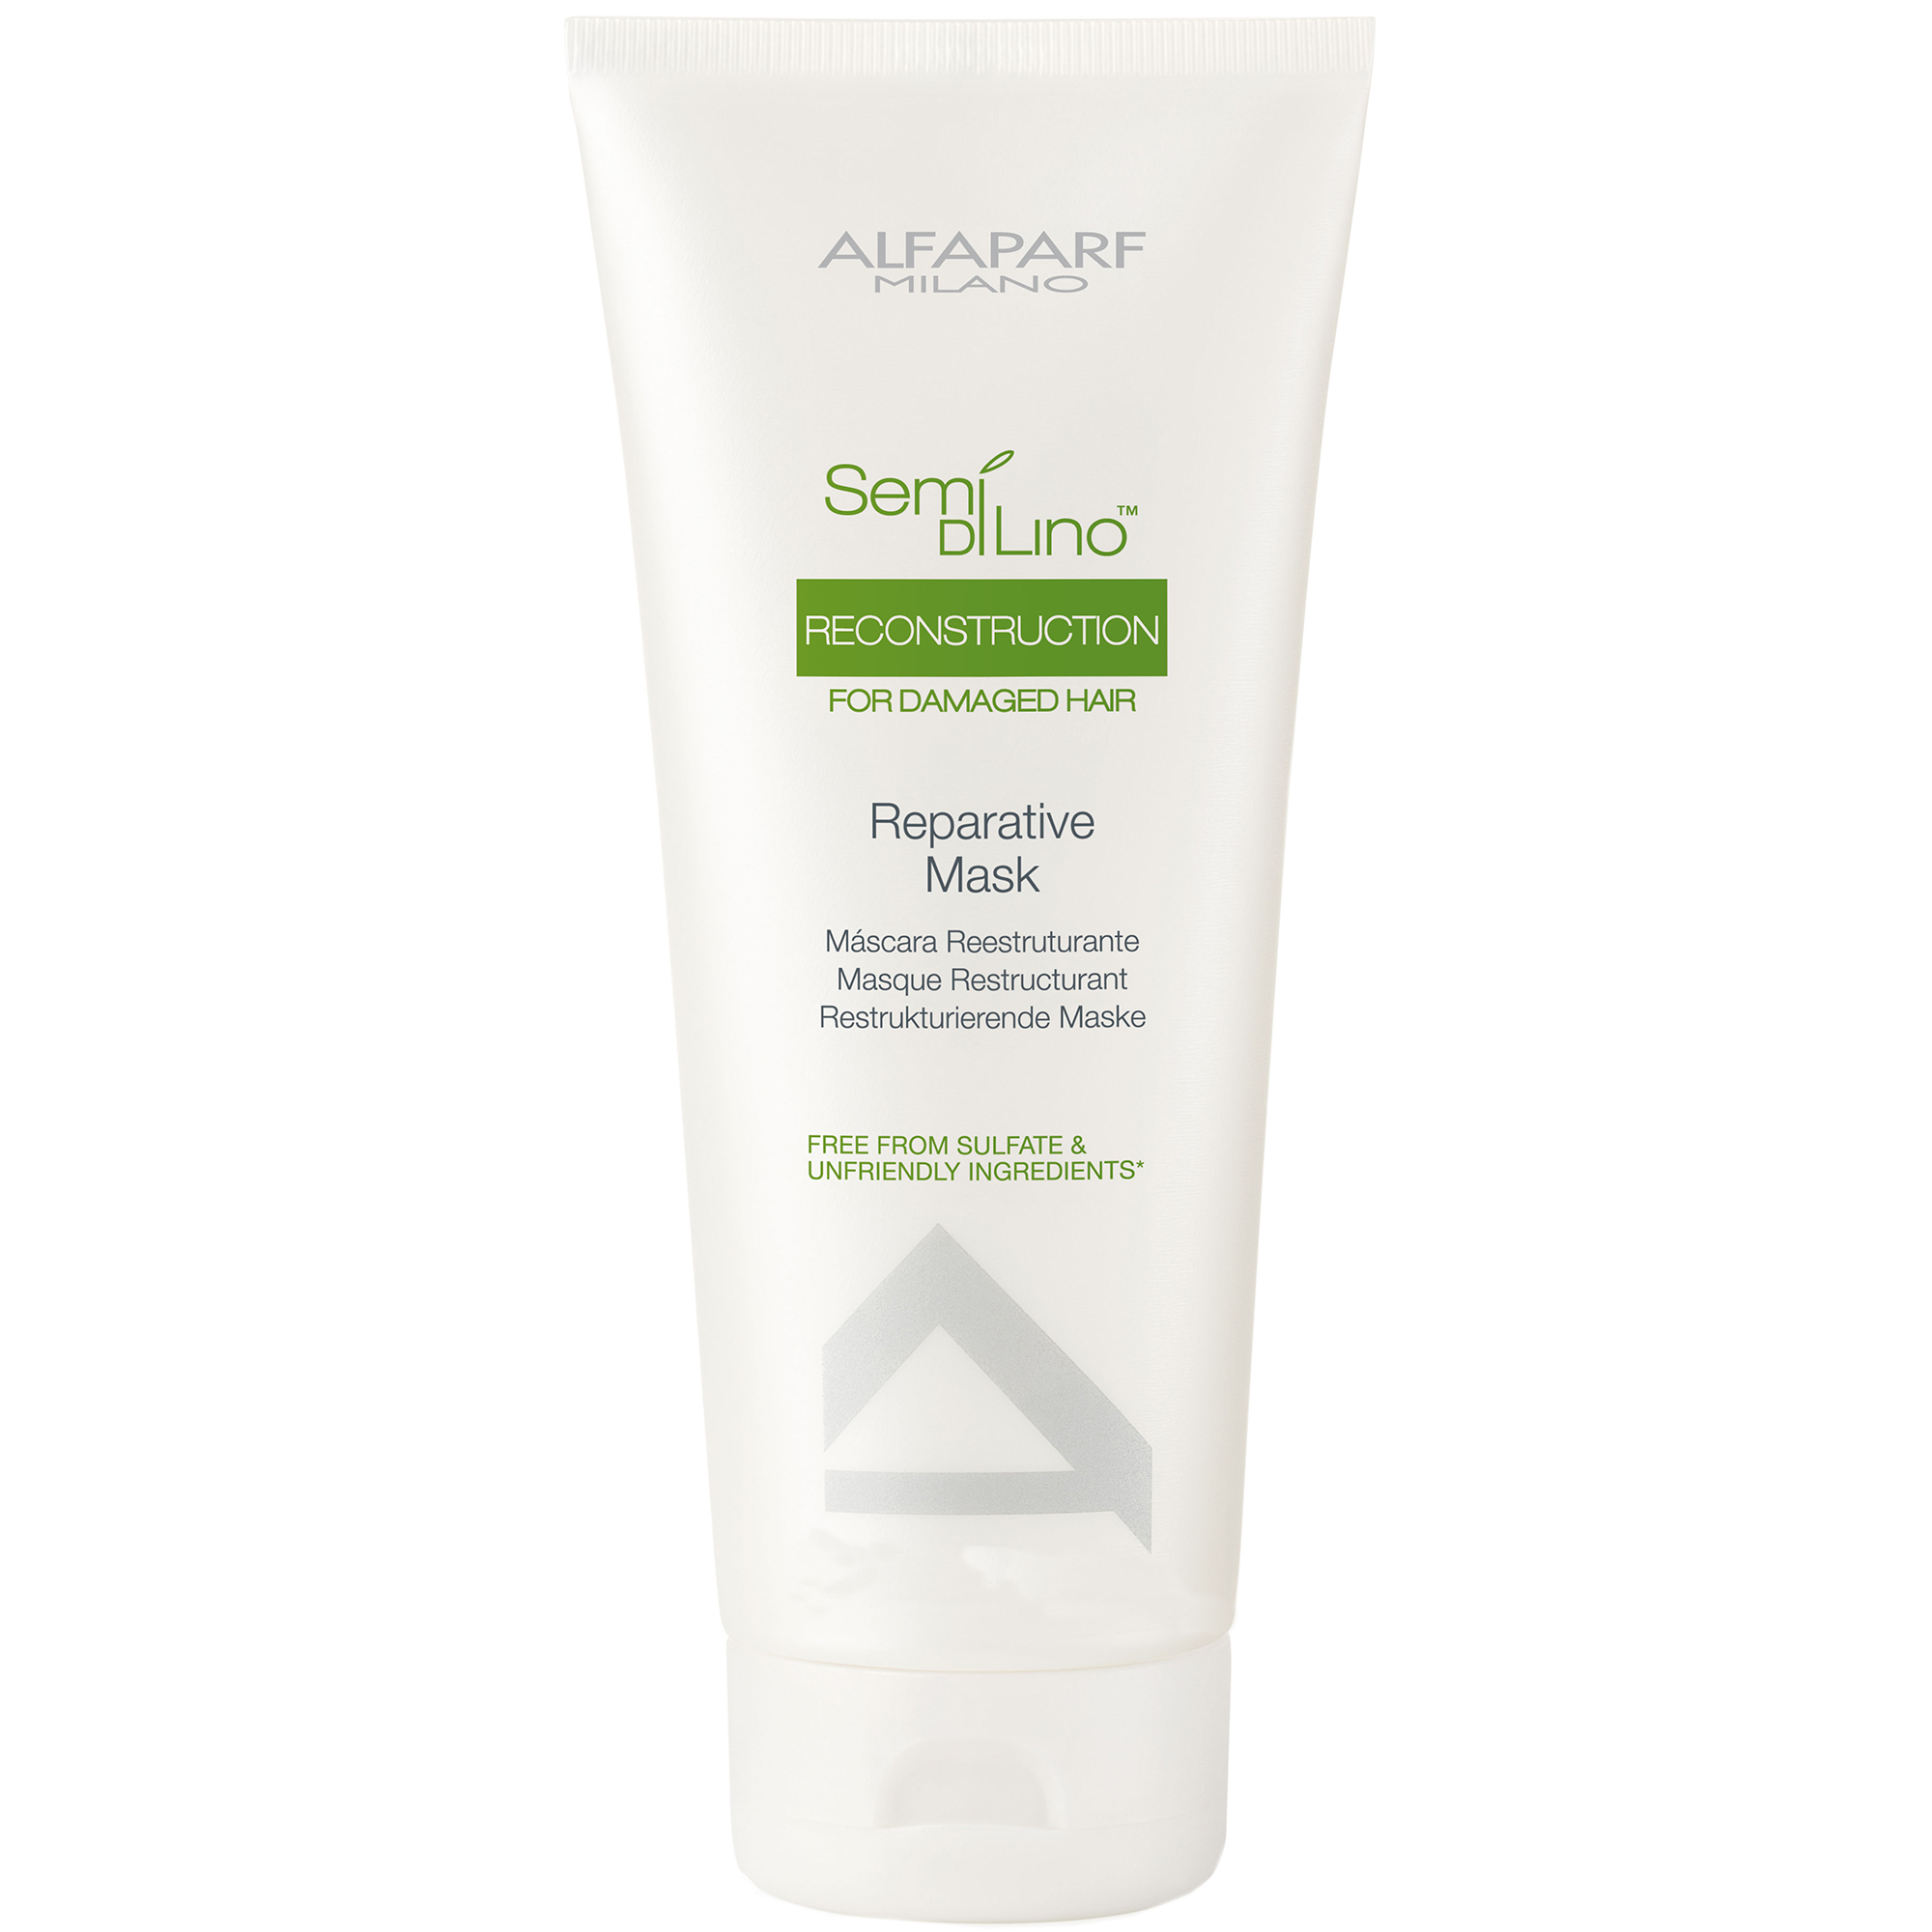 Alfaparf Semi Di Lino Reparative repair mask 200ml